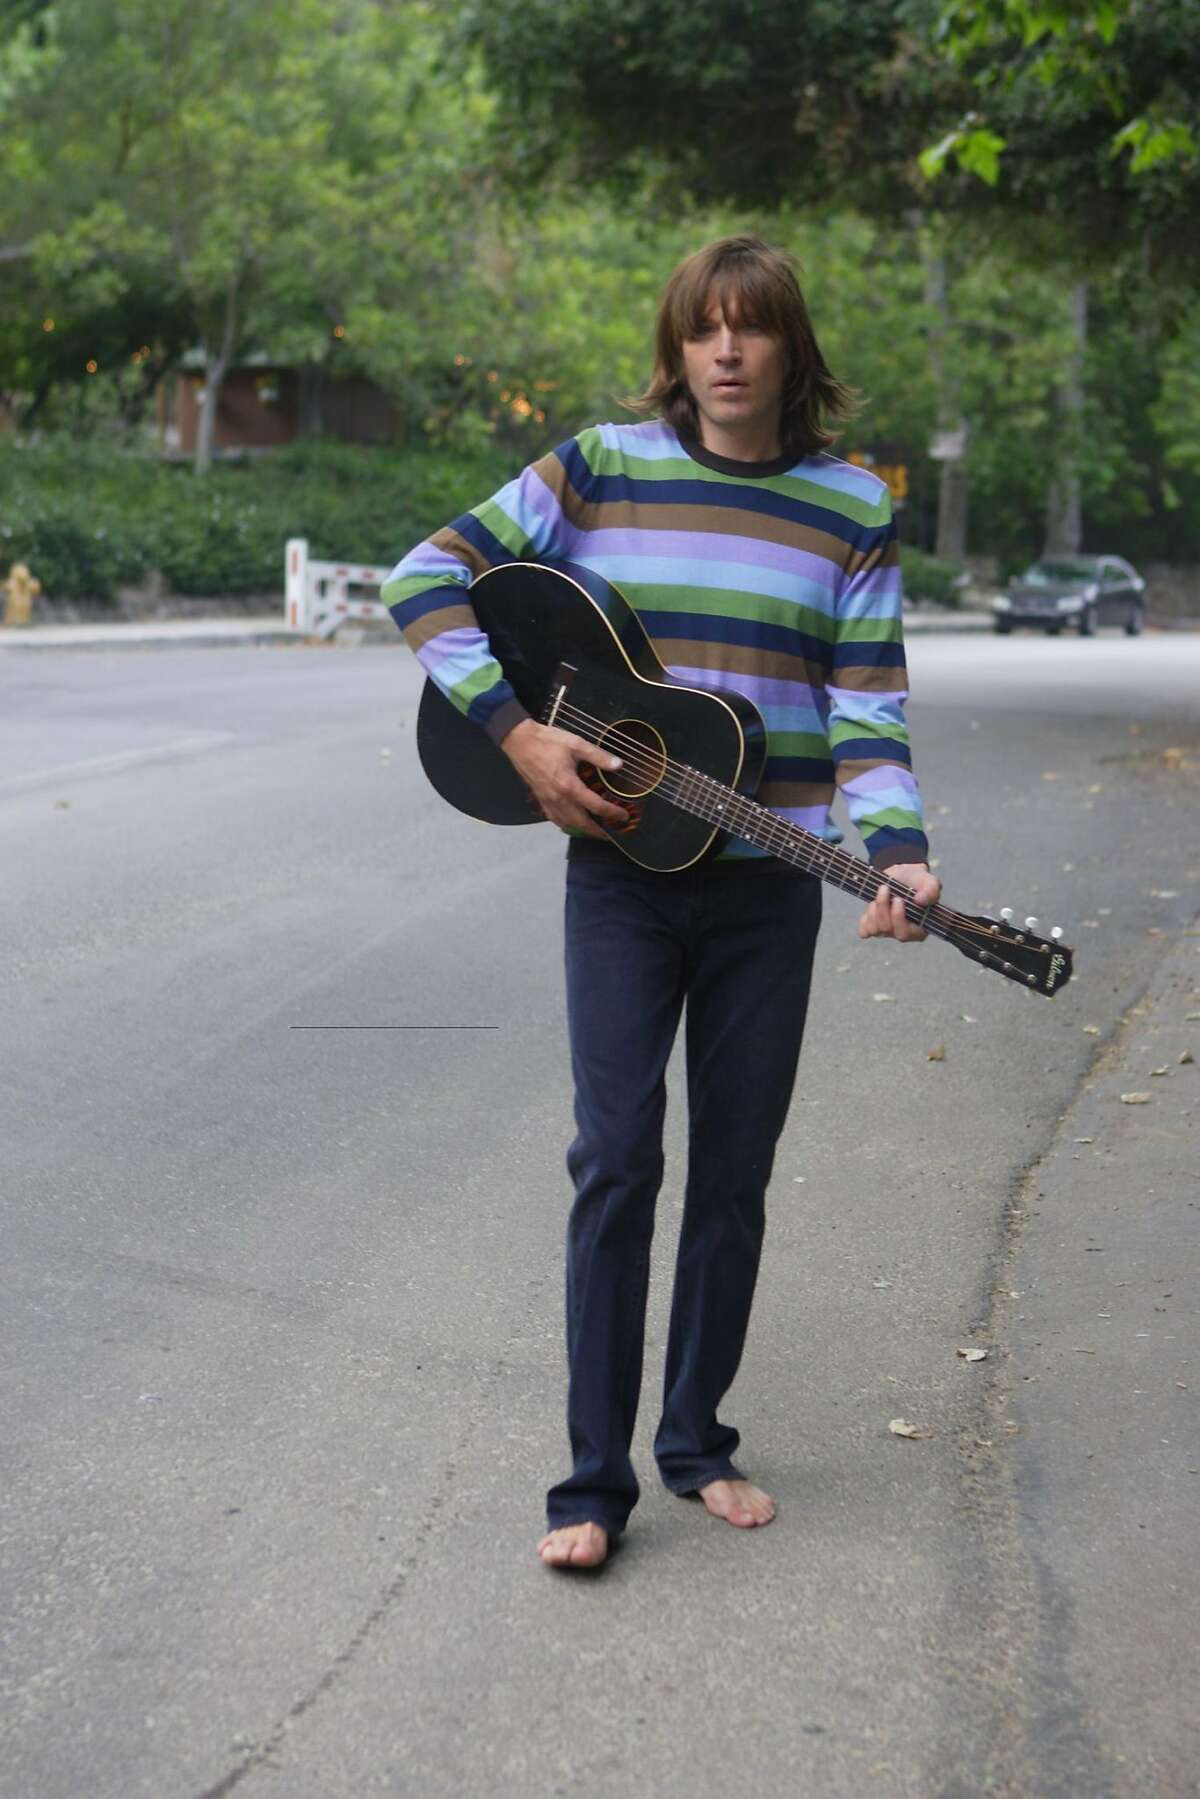 Evan Dando of The Lemonheads Ran on: 11-19-2006 Evan Dando co-founded the Lemonheads in 1986. The band became famous after covering the classic song Mrs. Robinson in 1992.